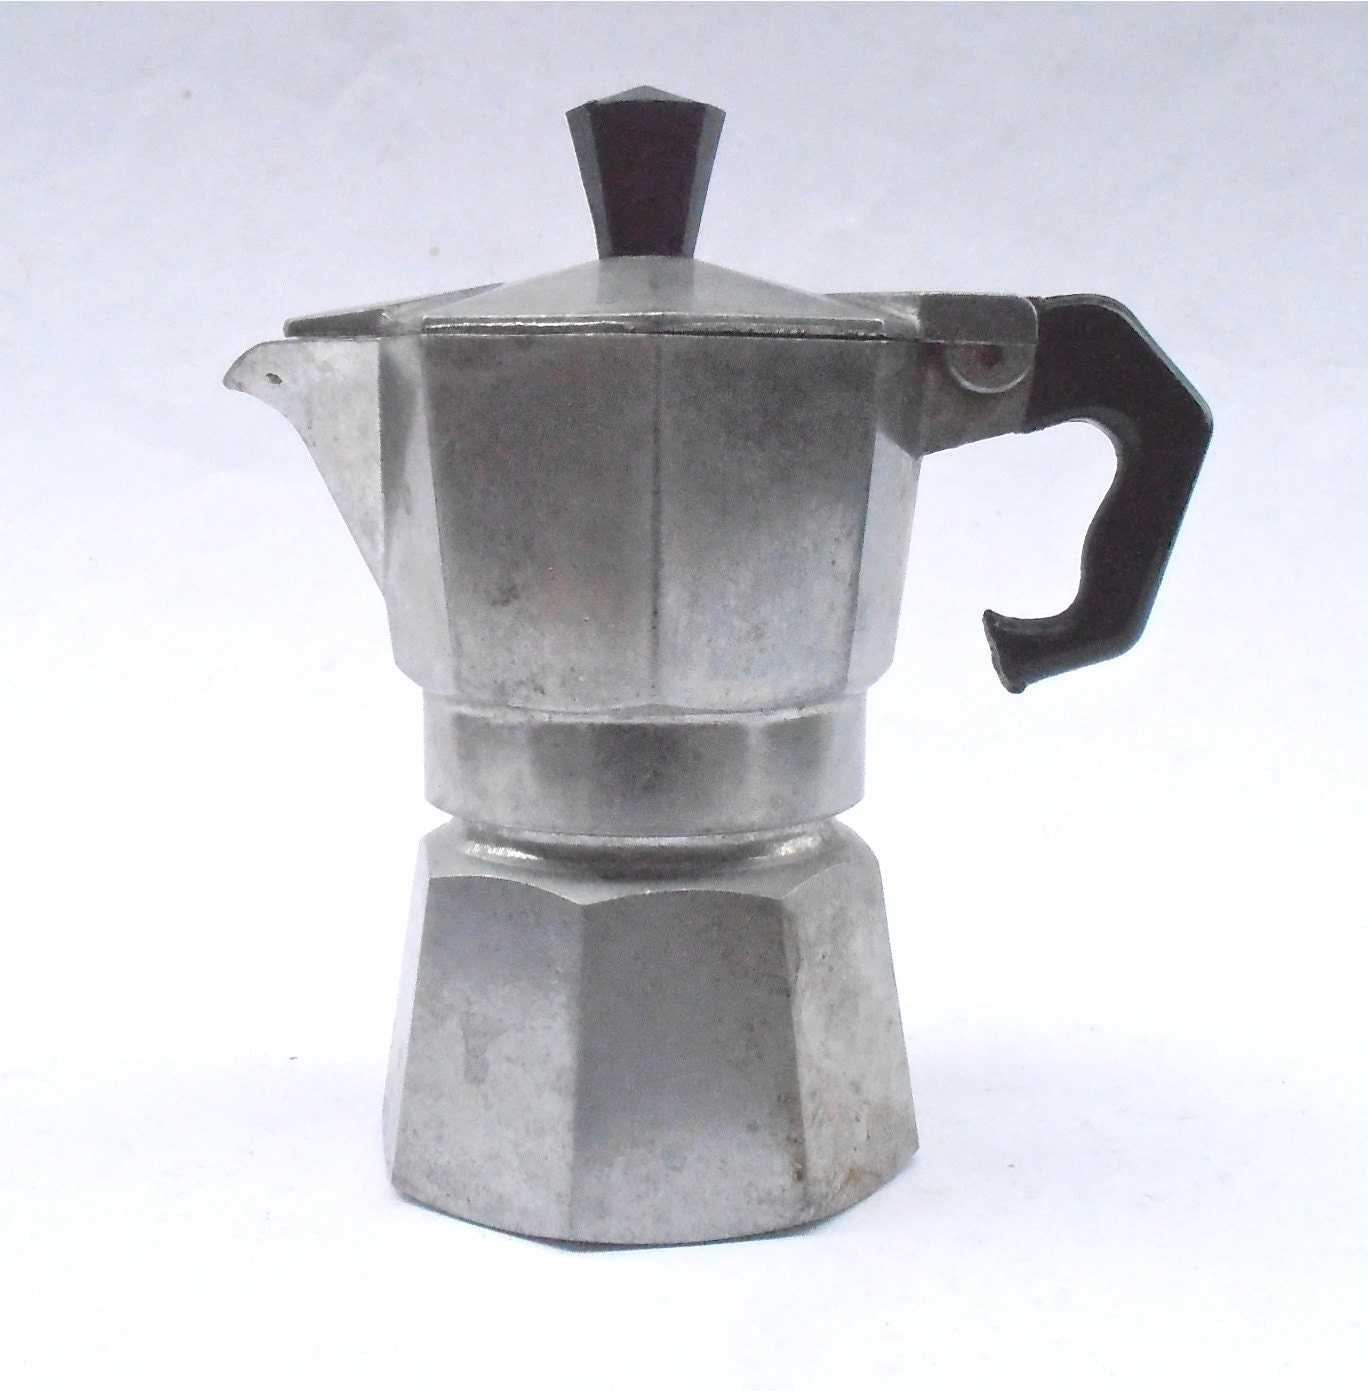 Antique Italian Coffee Maker : Vintage One Cup Espresso Coffee Maker Marimba Italian Aluminum